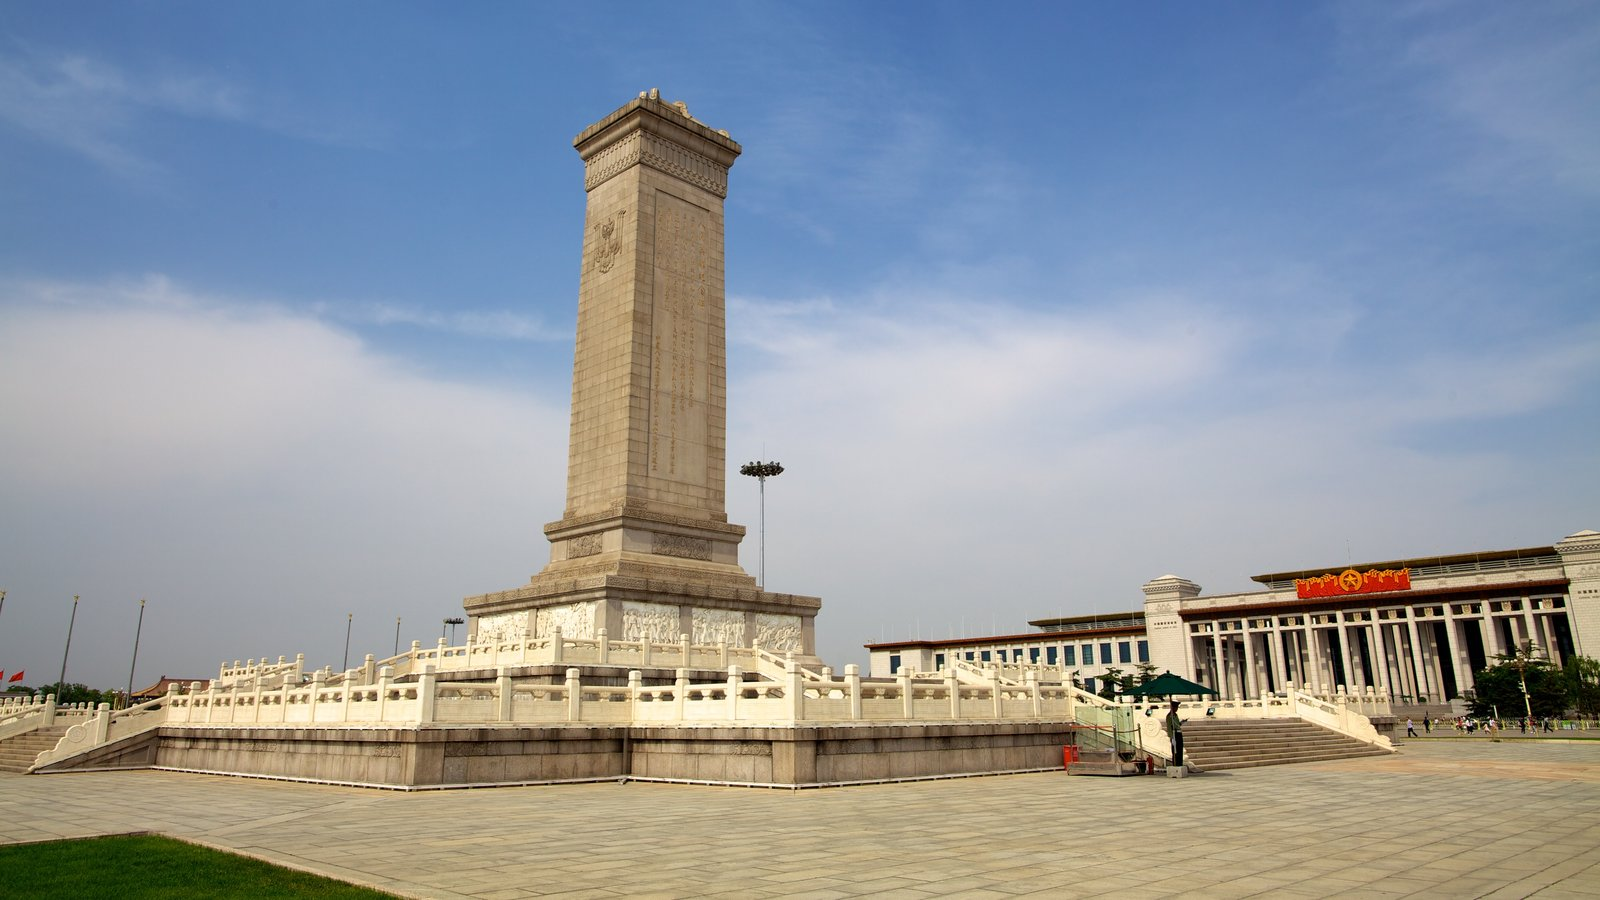 the historical significance of the tiananmen square Ills that have beset the country's 14 billion people for much of its history  the  next day, as a column of army tanks approached the tiananmen square, they  met  the response of the international community had a significant impact on  the.